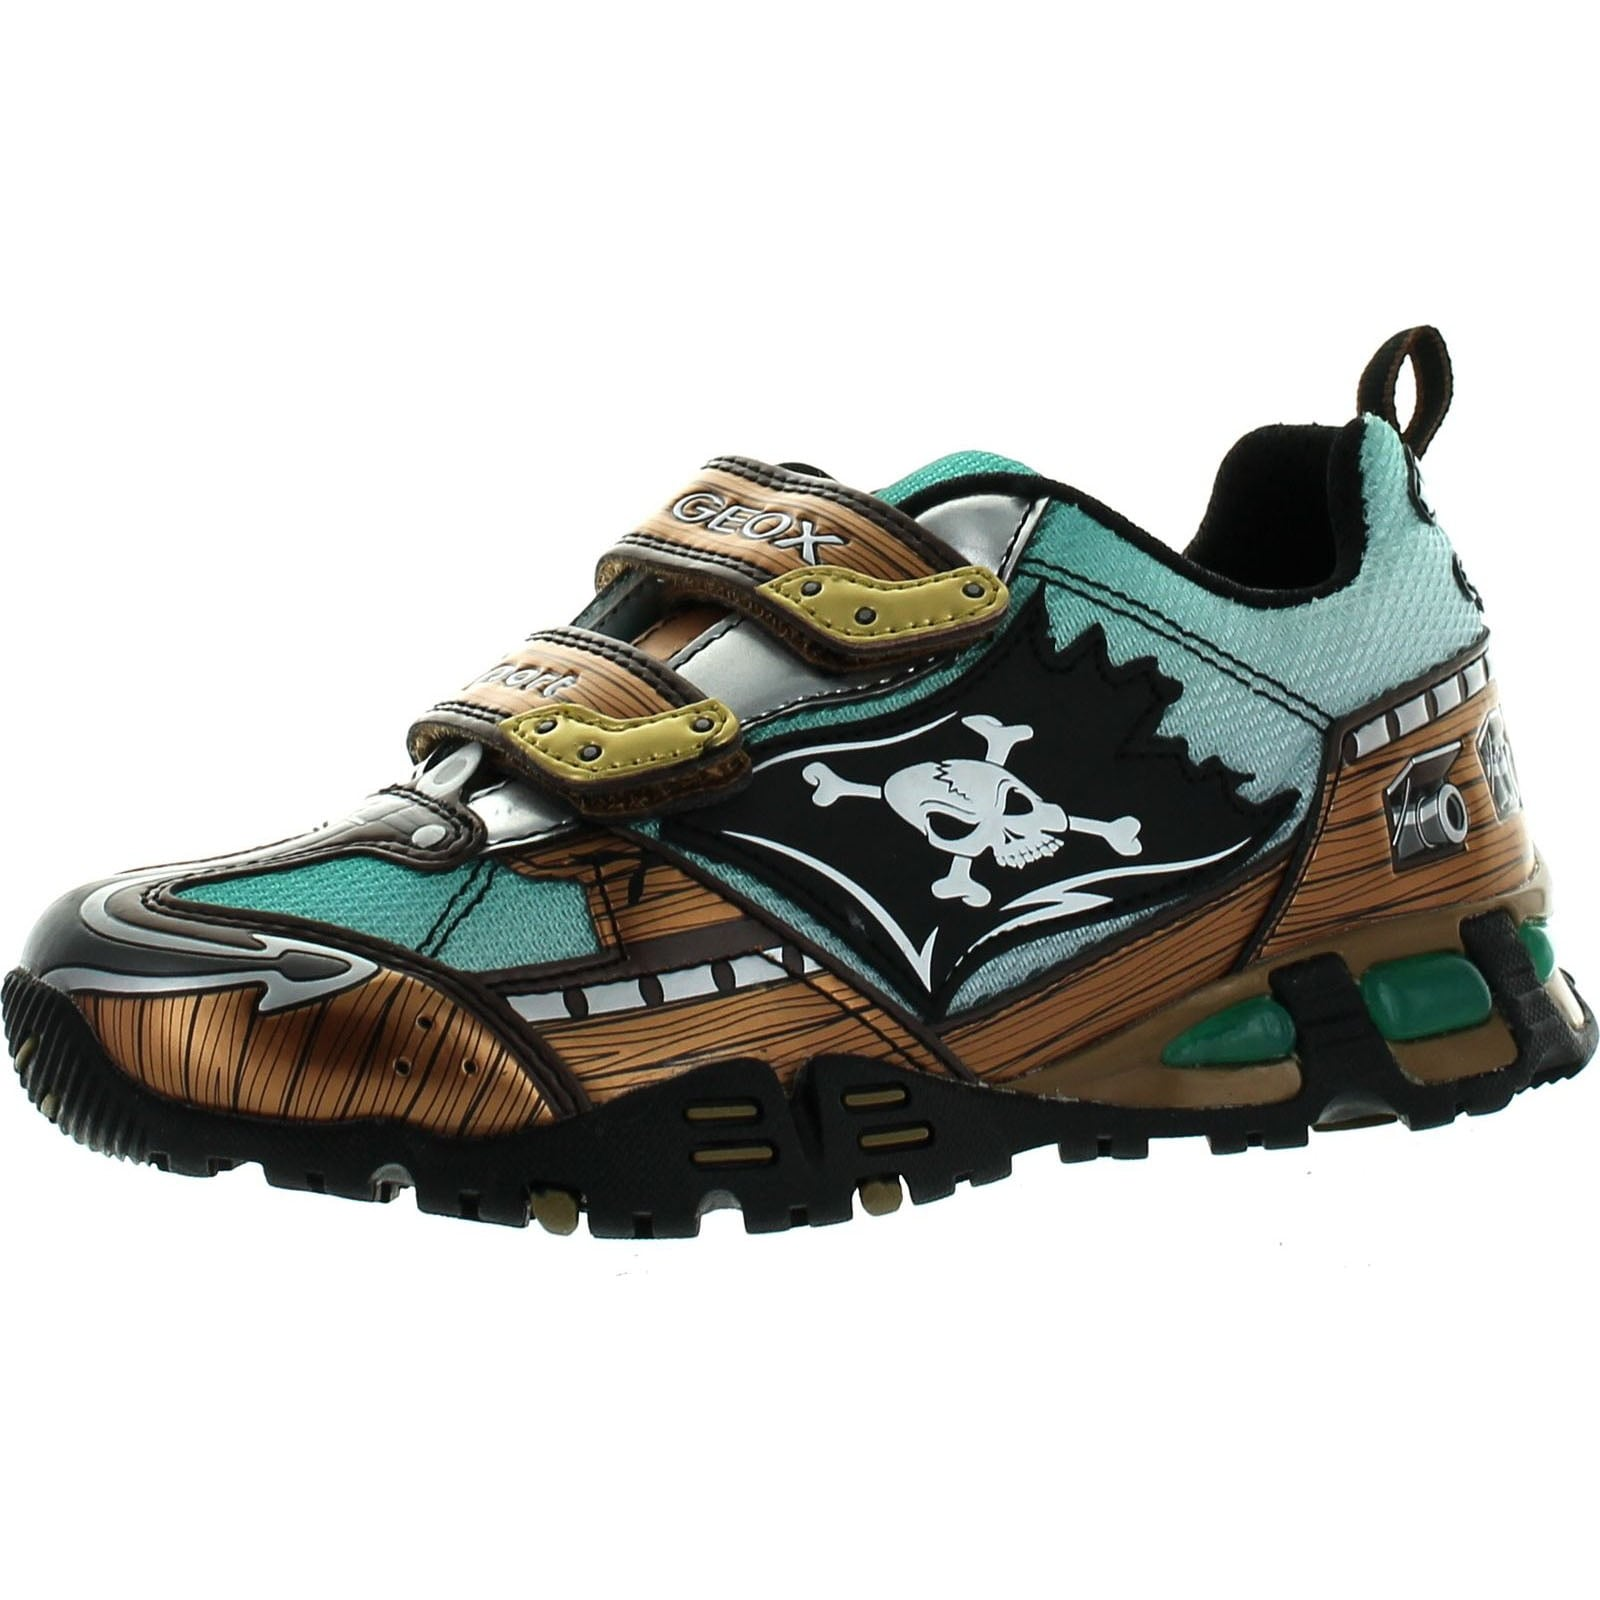 Geox Boys Lt Eclipse Kids Light Up Fashion Sneakers Free Shipping